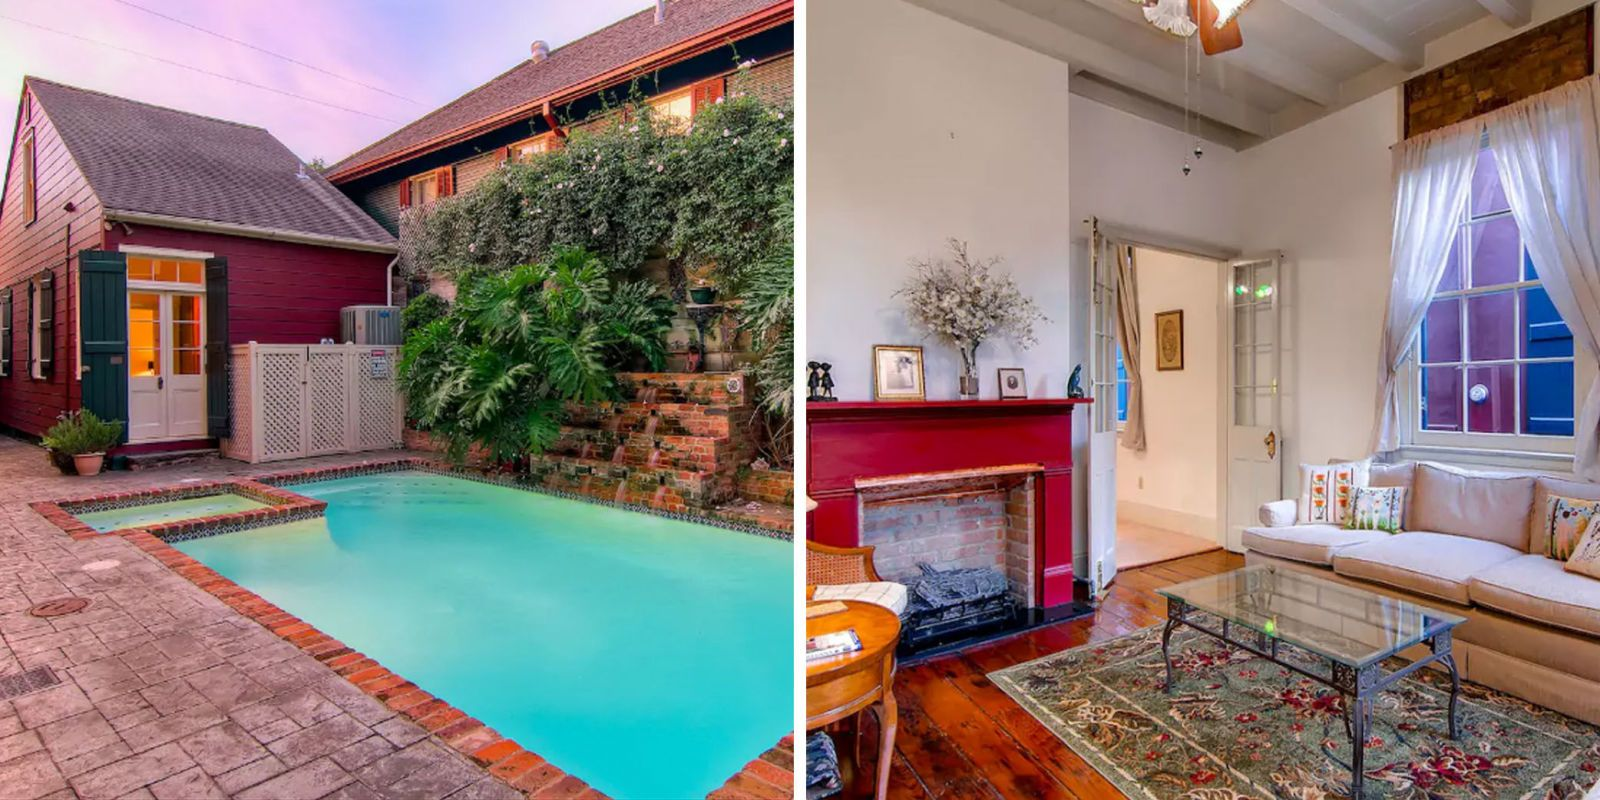 10 Beautiful Airbnb Rentals In New Orleans Airbnb Rentals New Orleans Bachelorette New Orleans